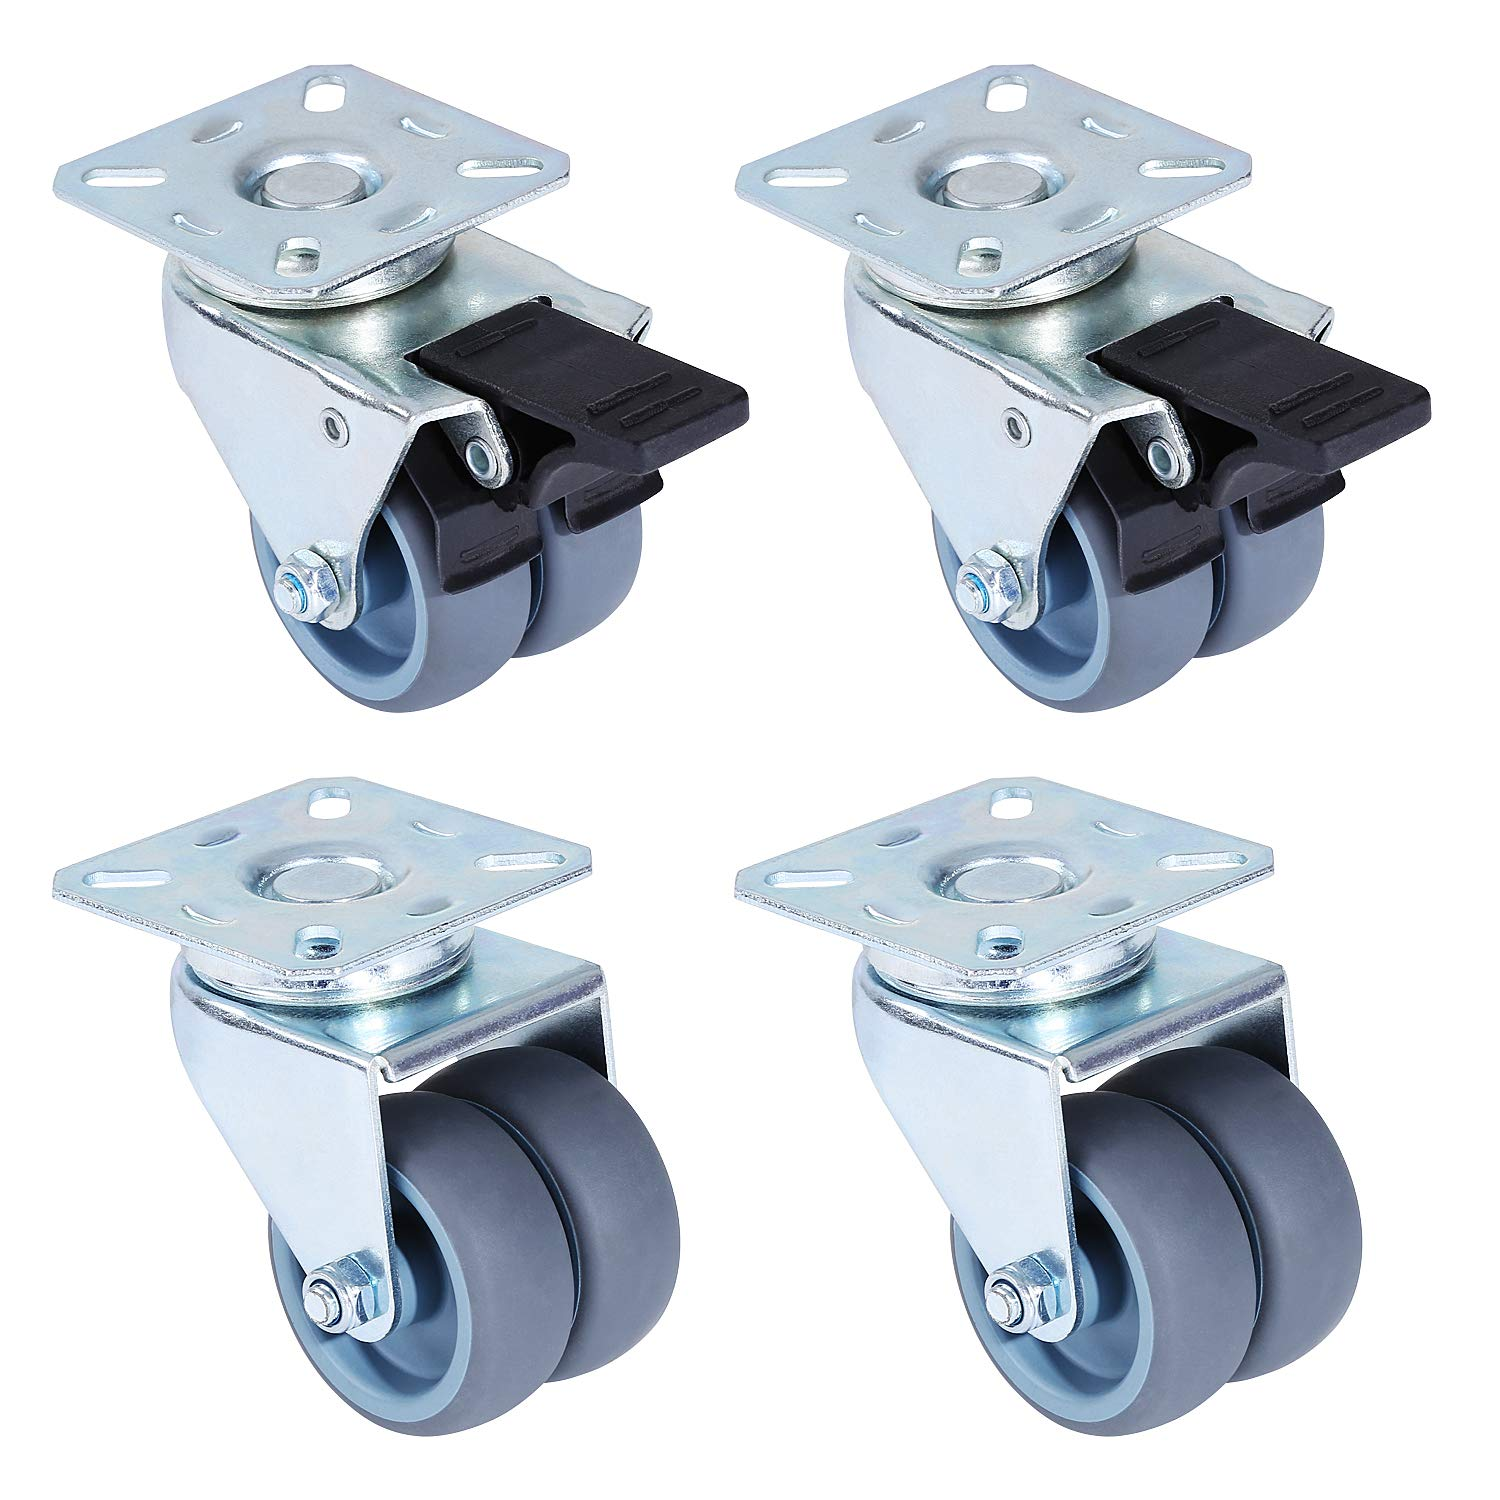 """FEMOR 2"""" Swivel Caster Wheels Heavy Duty Locking Casters Set of 4 with 2 Brakes Replacement Casters for Furniture Carts Dolly Workbench Trolley"""